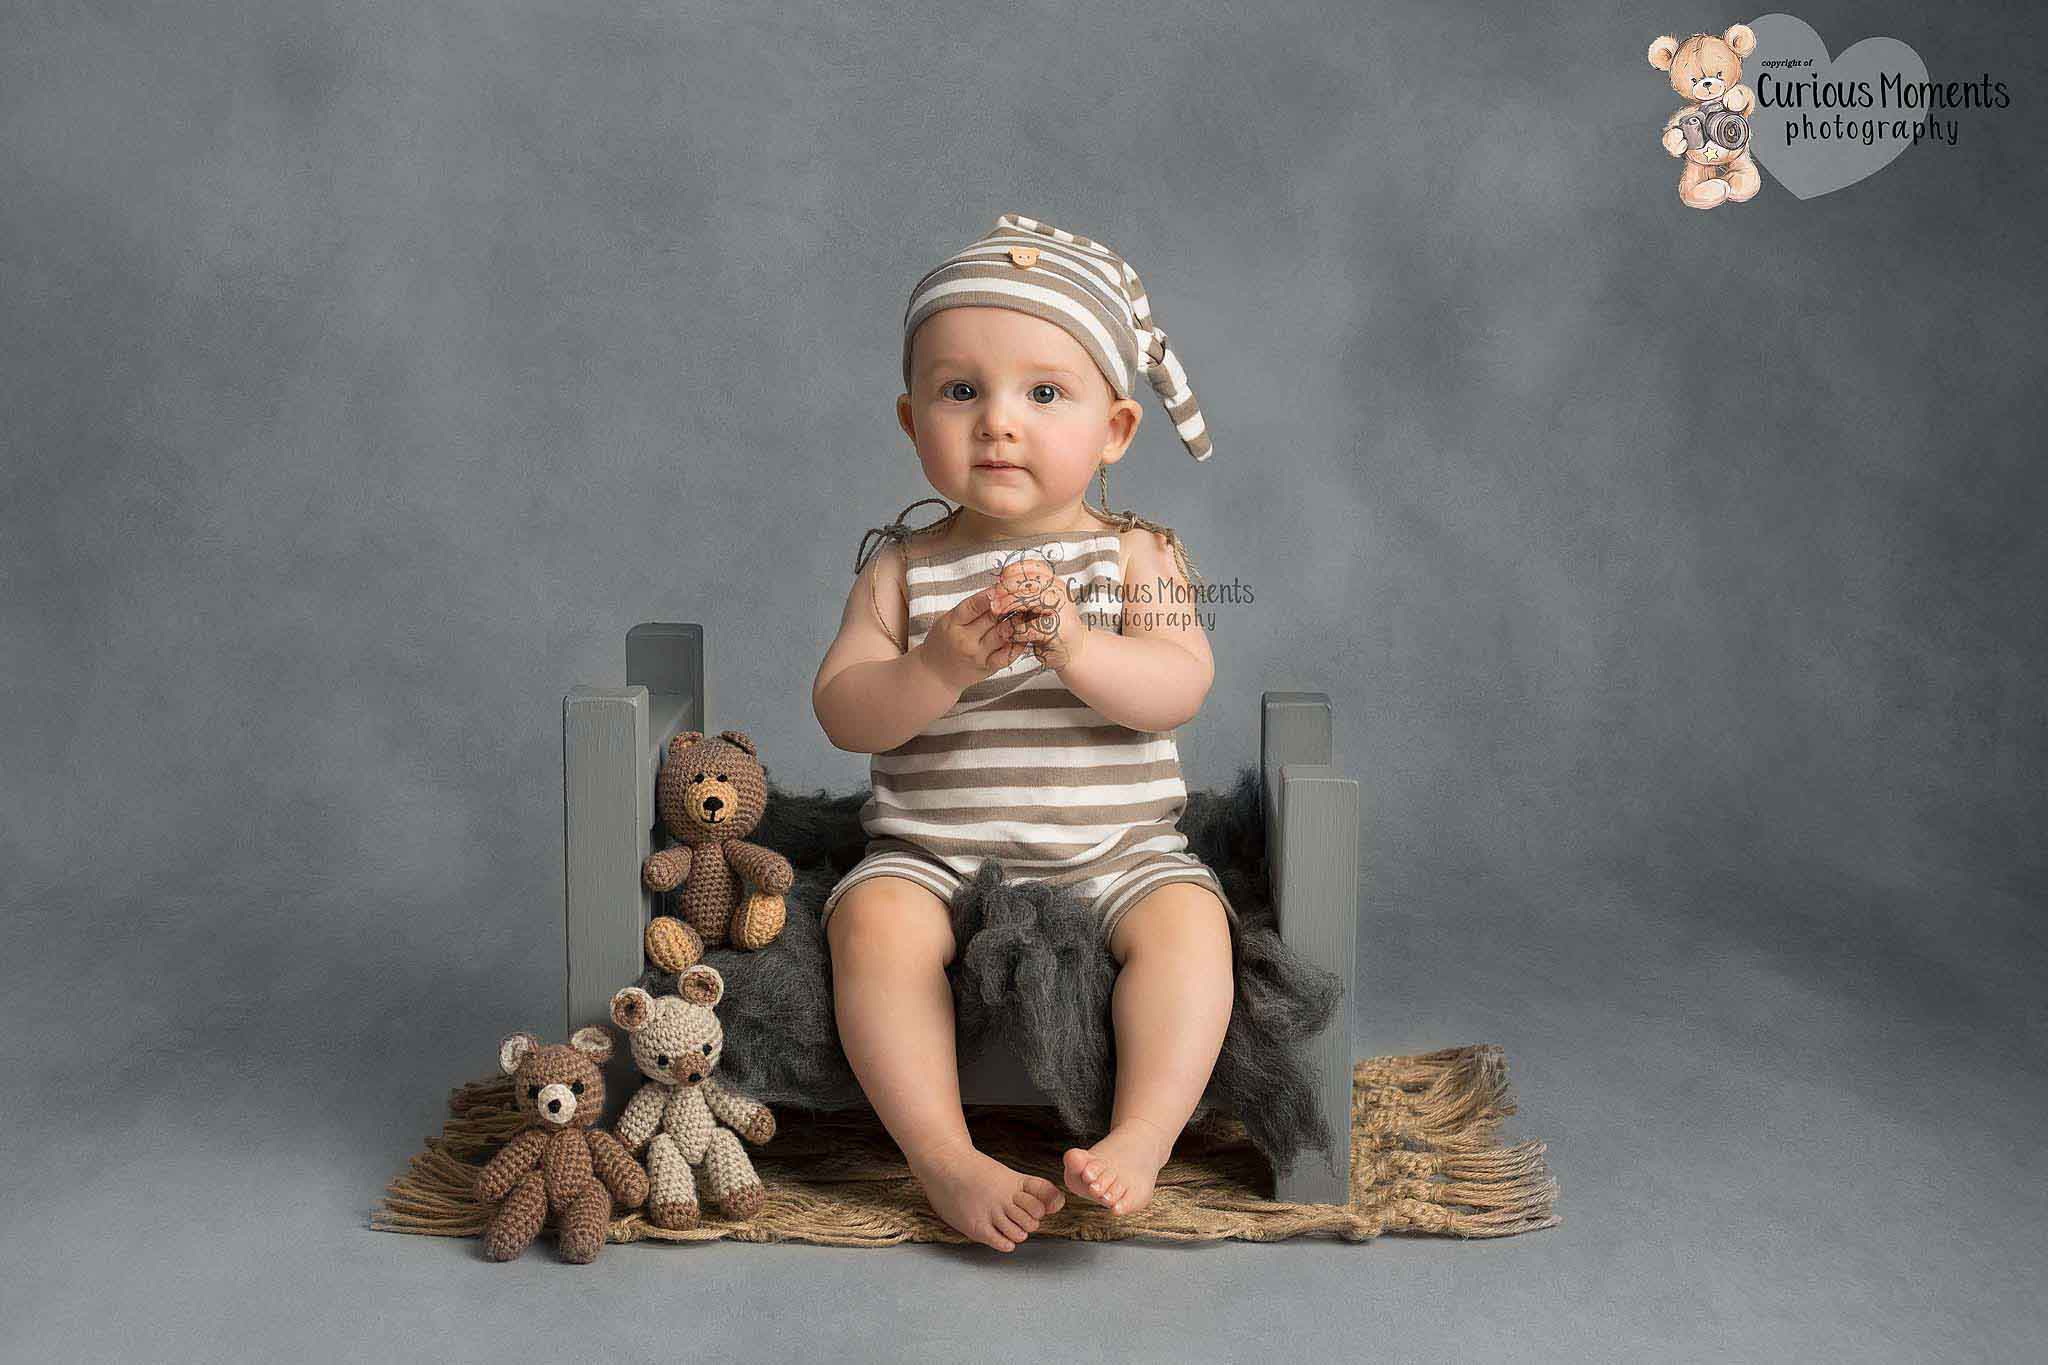 Baby Photography Privacy Policy